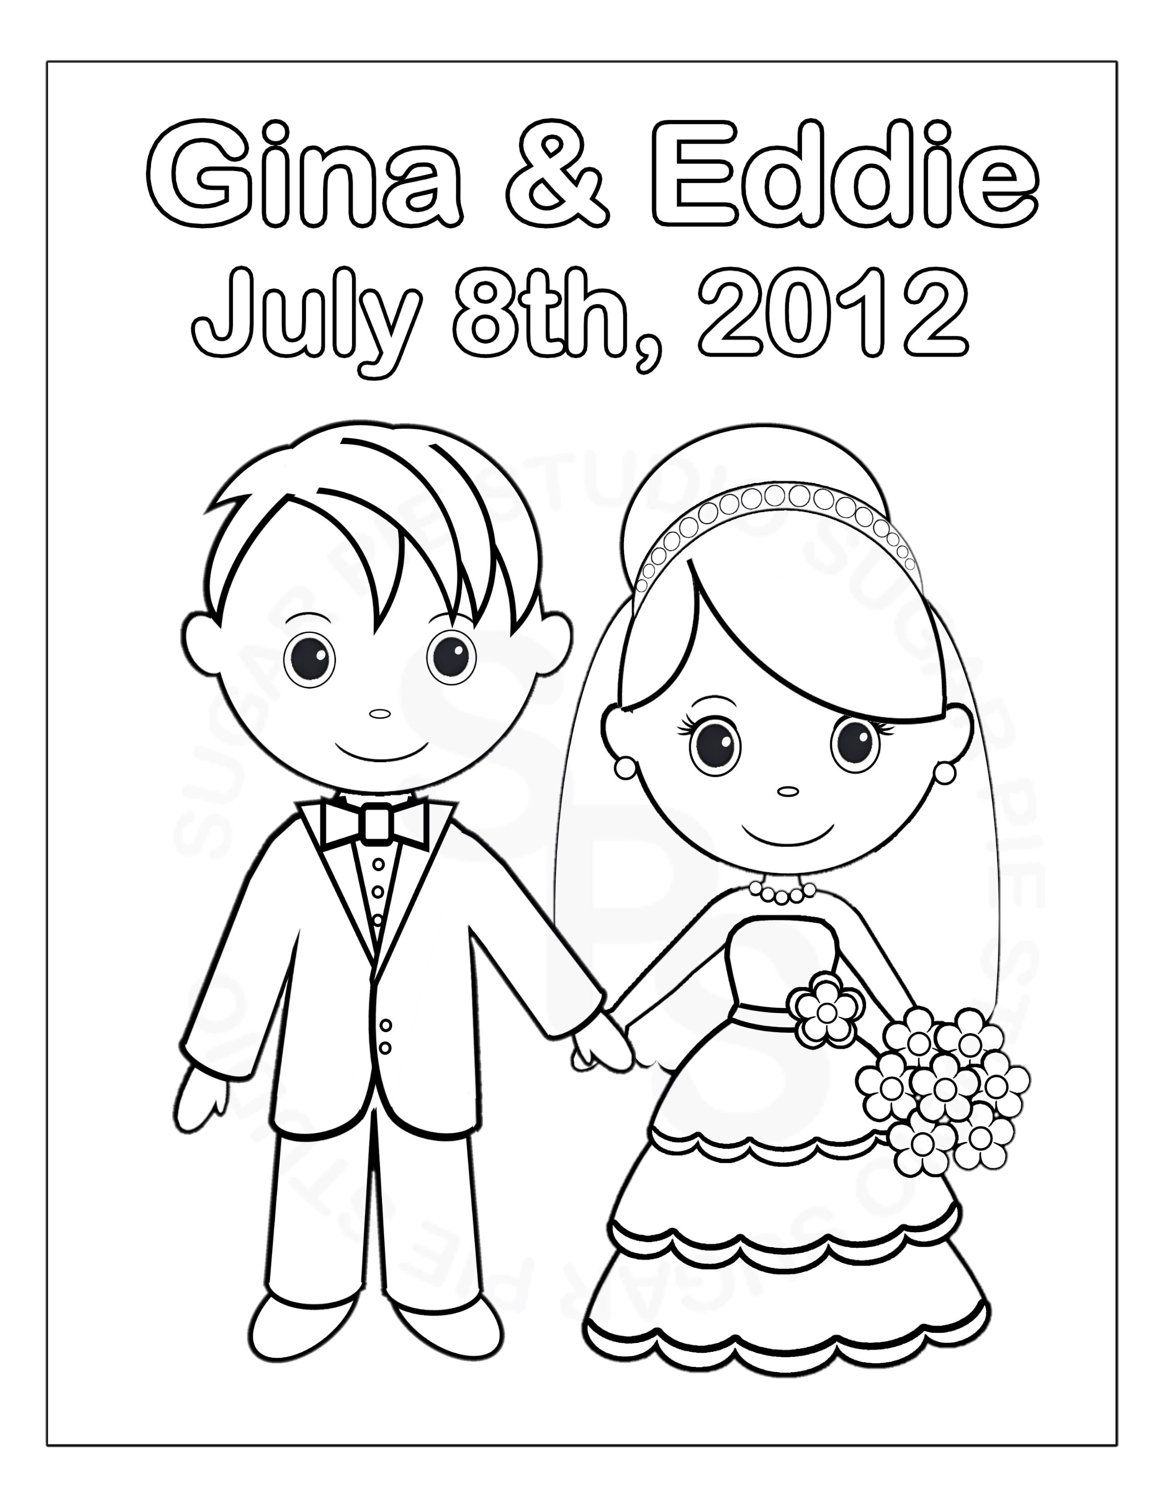 personalized printable bride groom wedding party favor childrens kids coloring page activity pdf or jpeg file - Wedding Coloring Books For Children